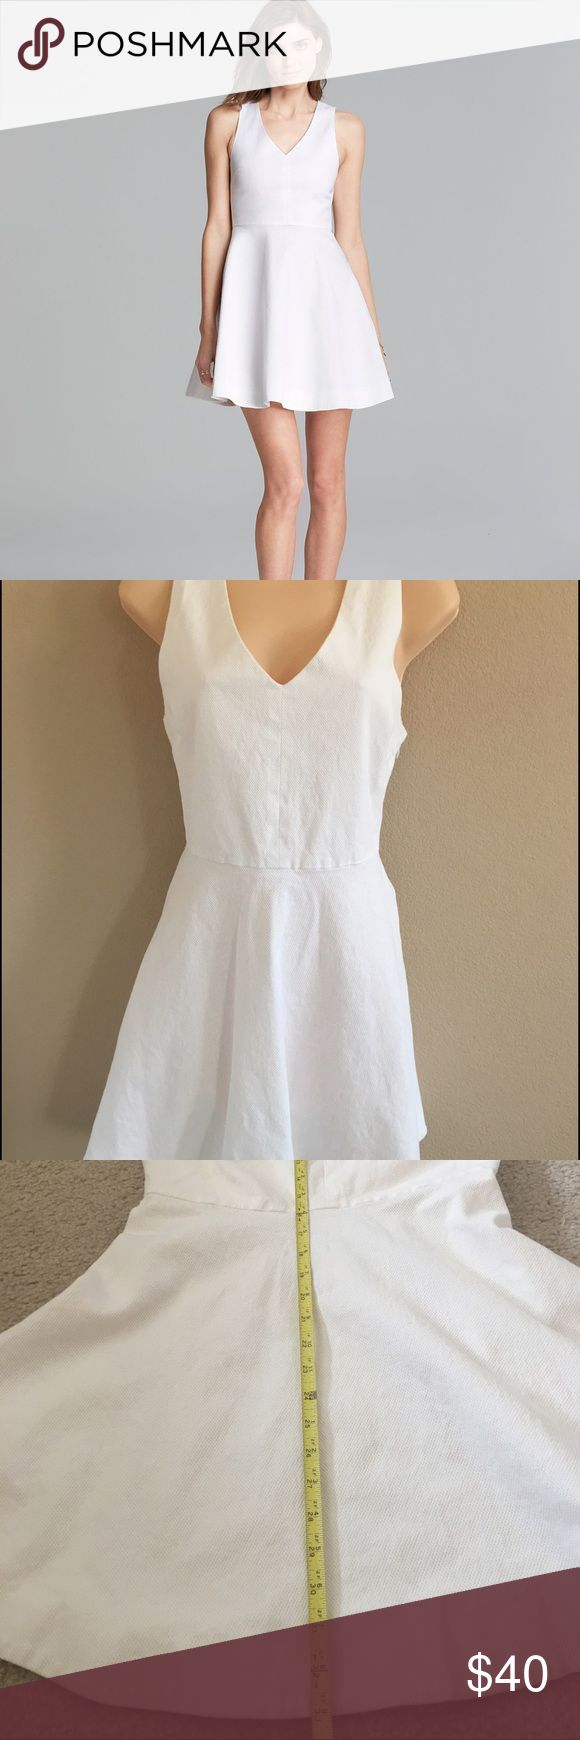 Joie Fit& Flare Norton white cotton v-neck Dress In great condition! Refer to pictures for measurements. Joie Dresses Mini